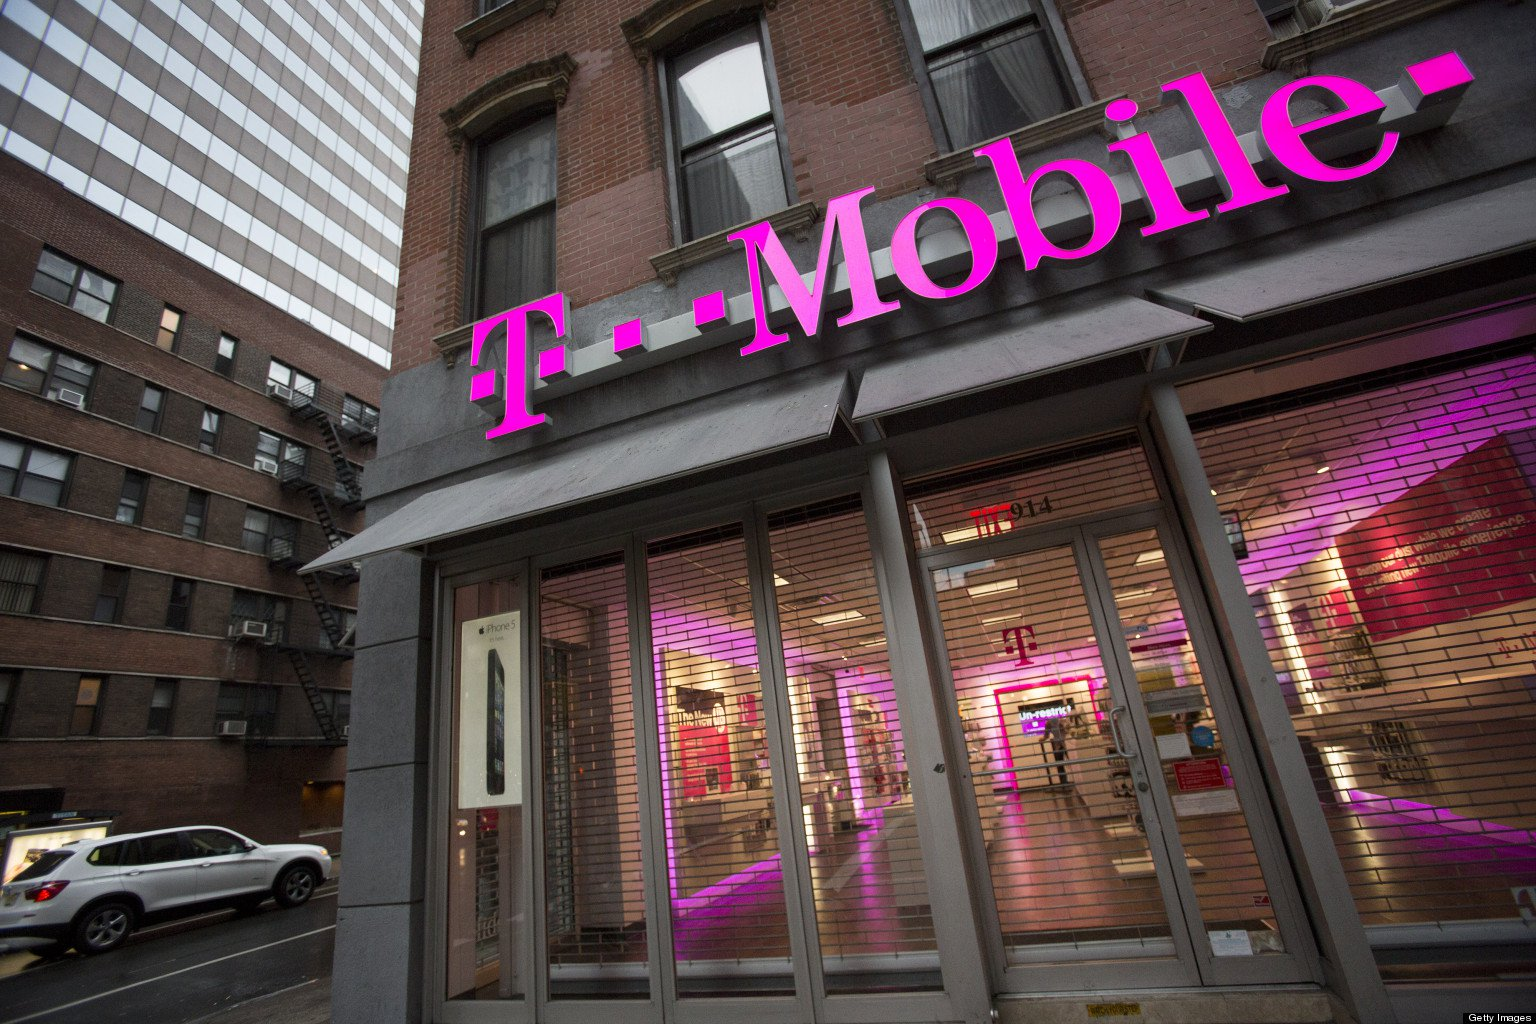 T-Mobile 600 MHz extended range LTE services reaches more than 1,250 cities, towns